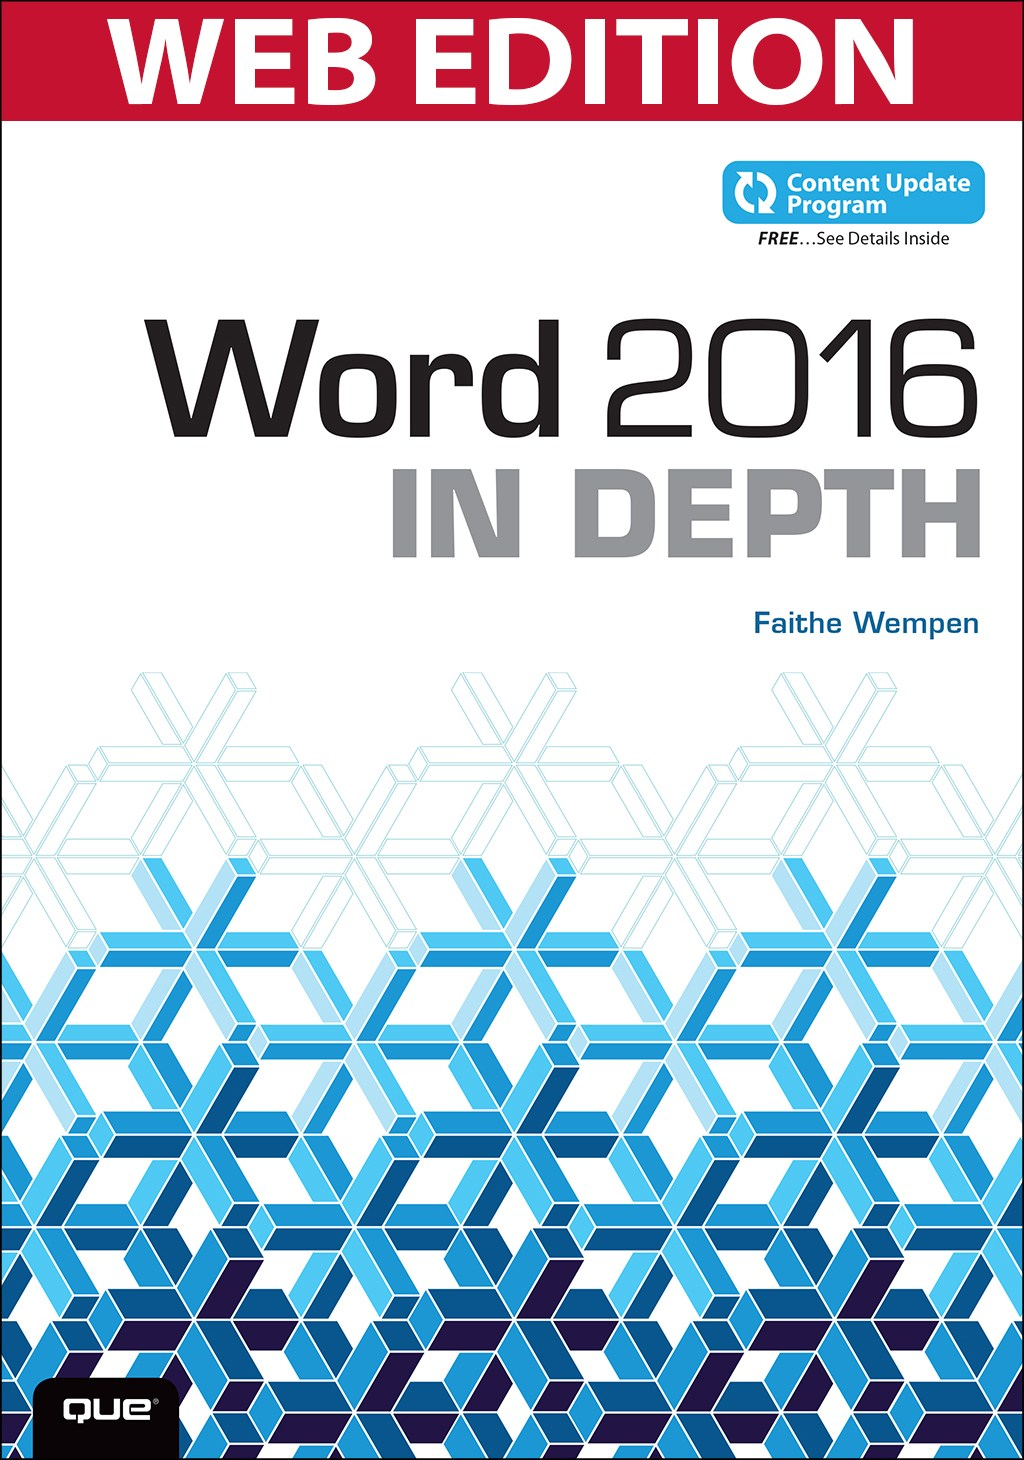 Word 2016 In Depth (Web Edition with Content Update Program)